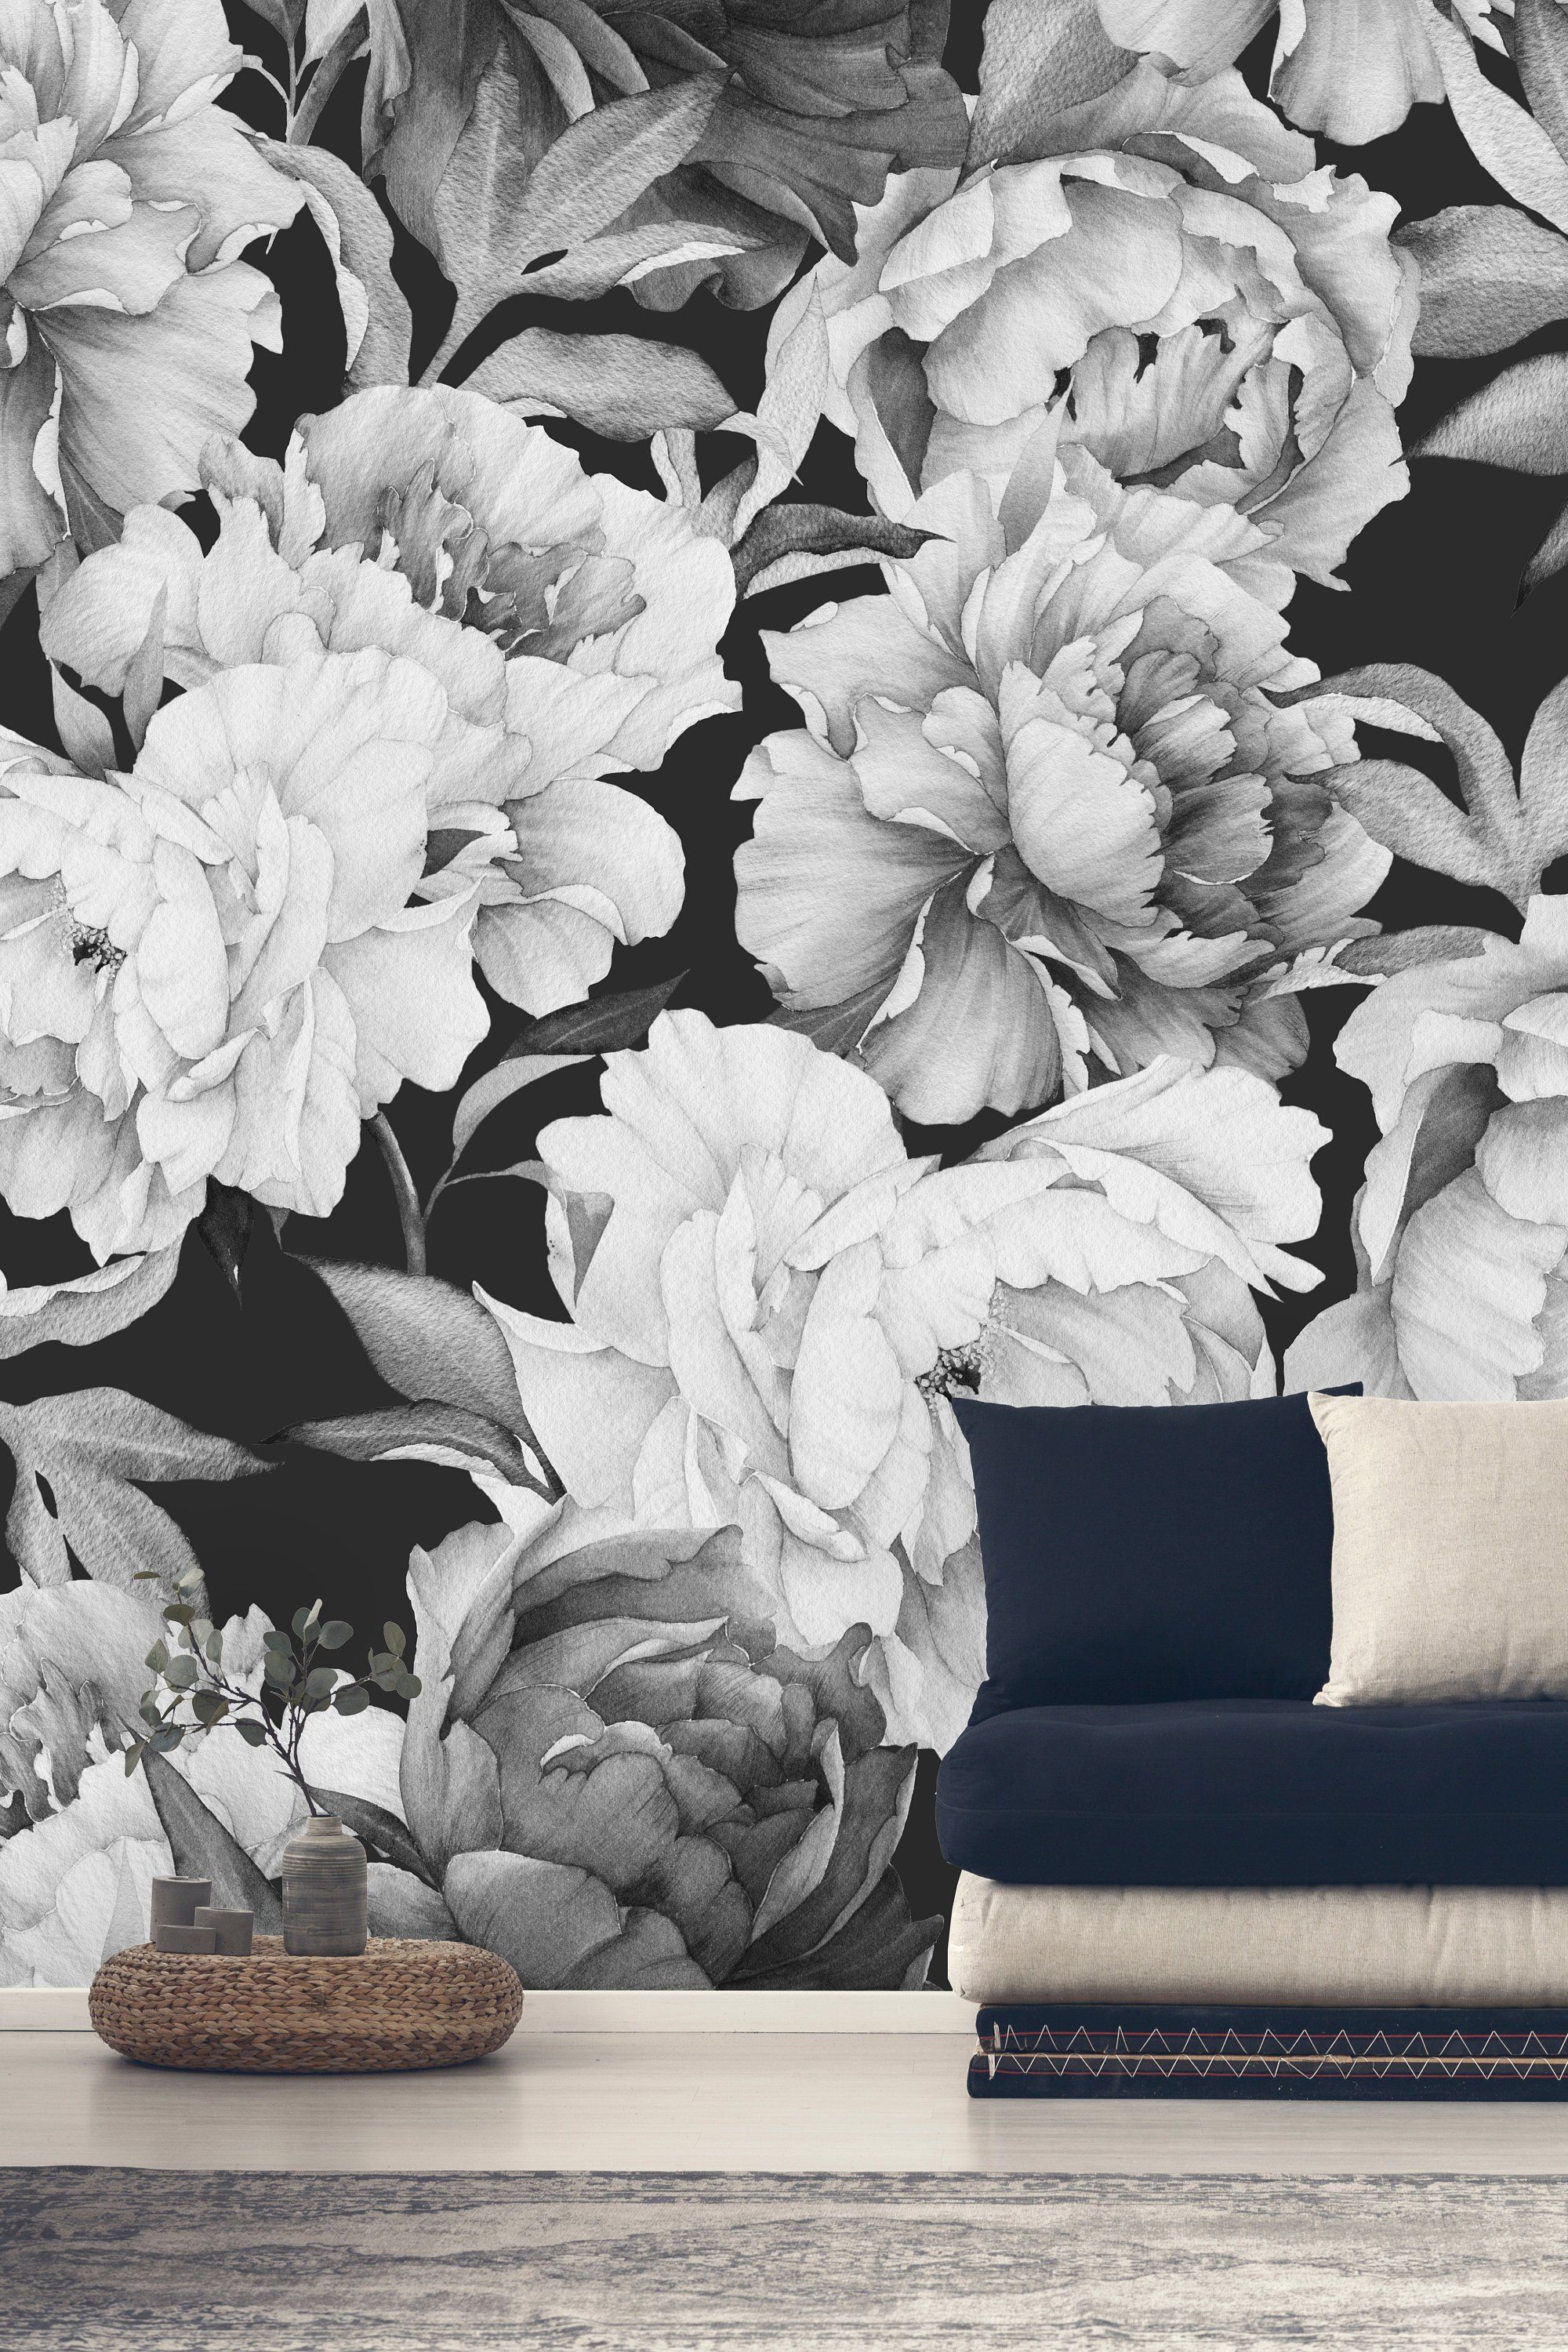 Large Peony On Black Background Removable Wallpaper Peel And Stick Wallpaper Wall Mural Self Adhesive Wallpaper Peel And Stick Wallpaper Wallpaper Wall Wallpaper